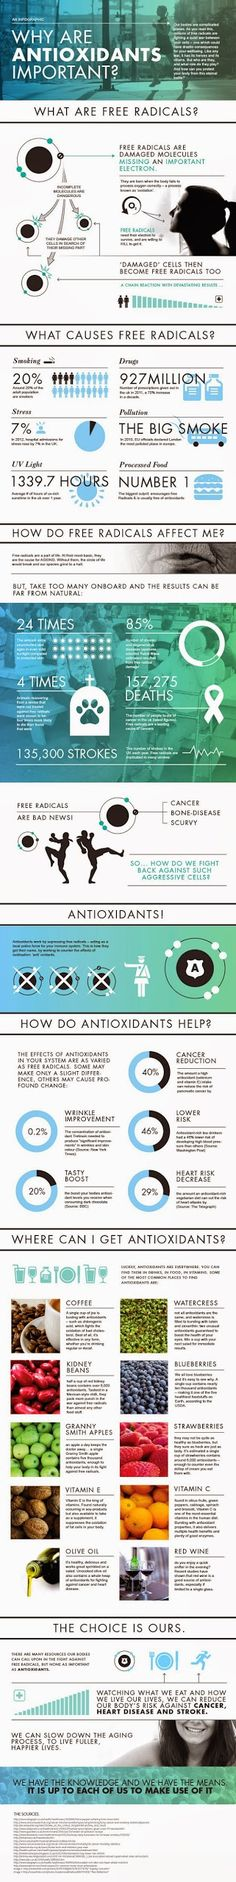 Explanation of Free Radicals, what they are, how they occur, leading causes and damage they cause, and how to neutralize and eliminate them - Importance of Antioxidants [Infographic]